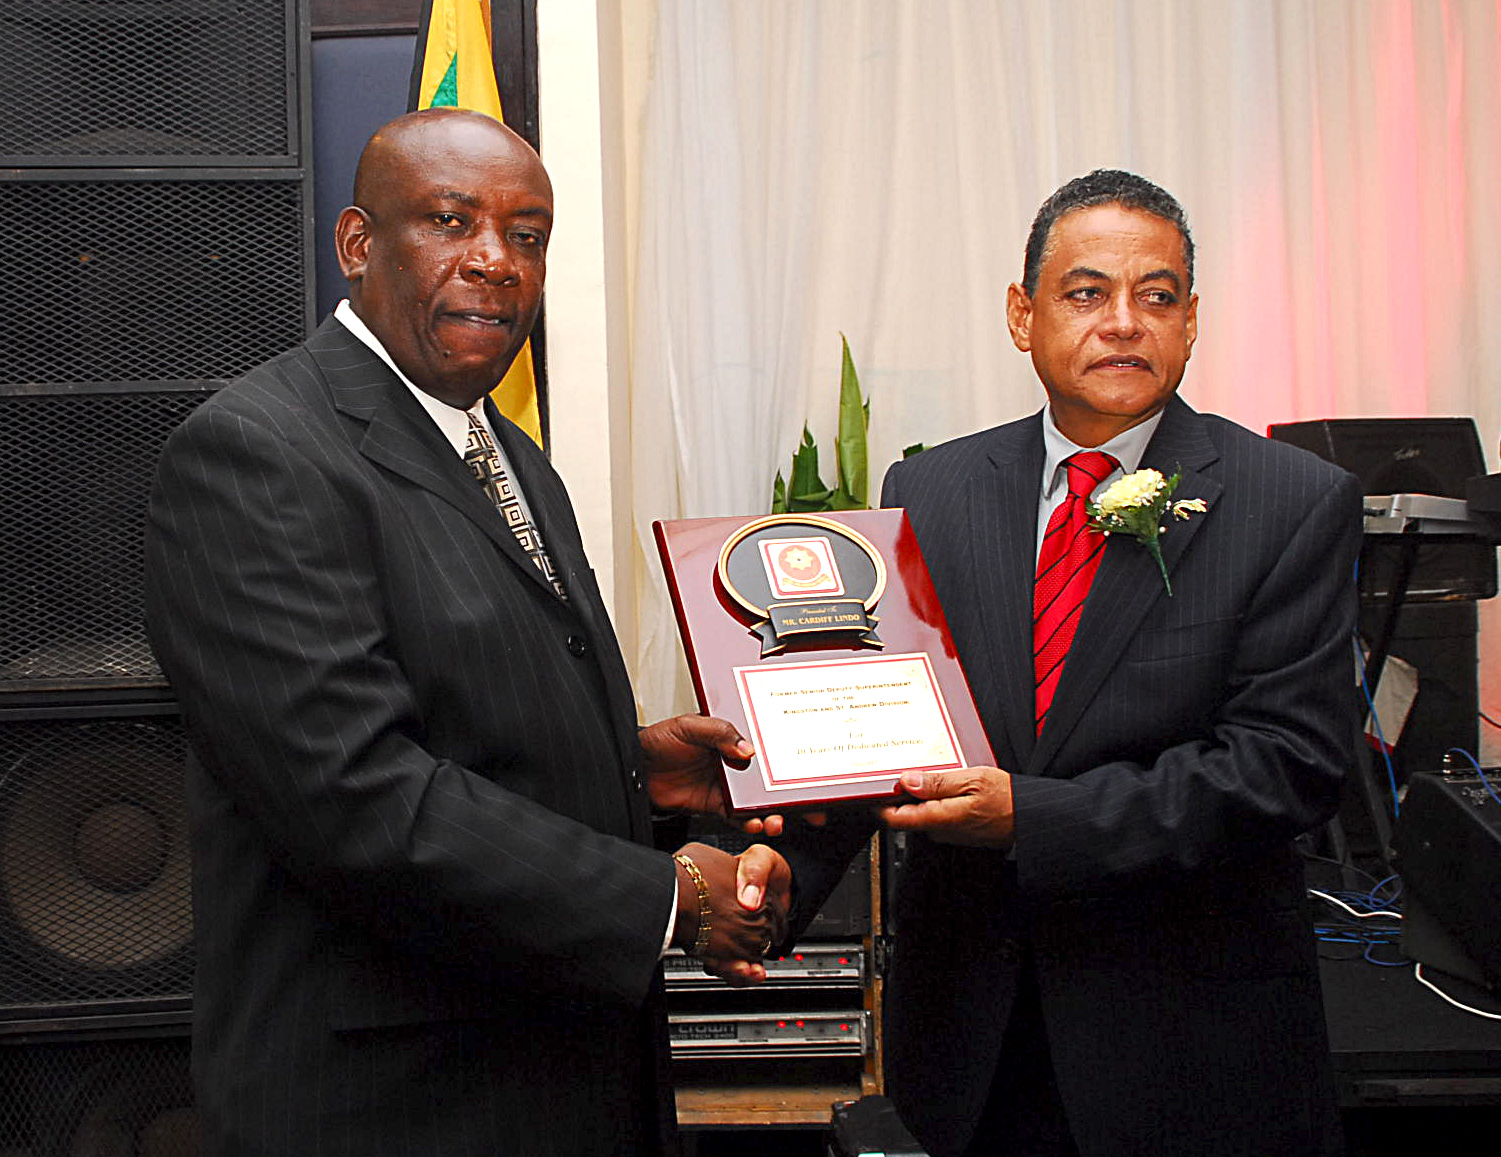 Award being distributed at the Worldnet Firefighter of the year 2015 award ceremony